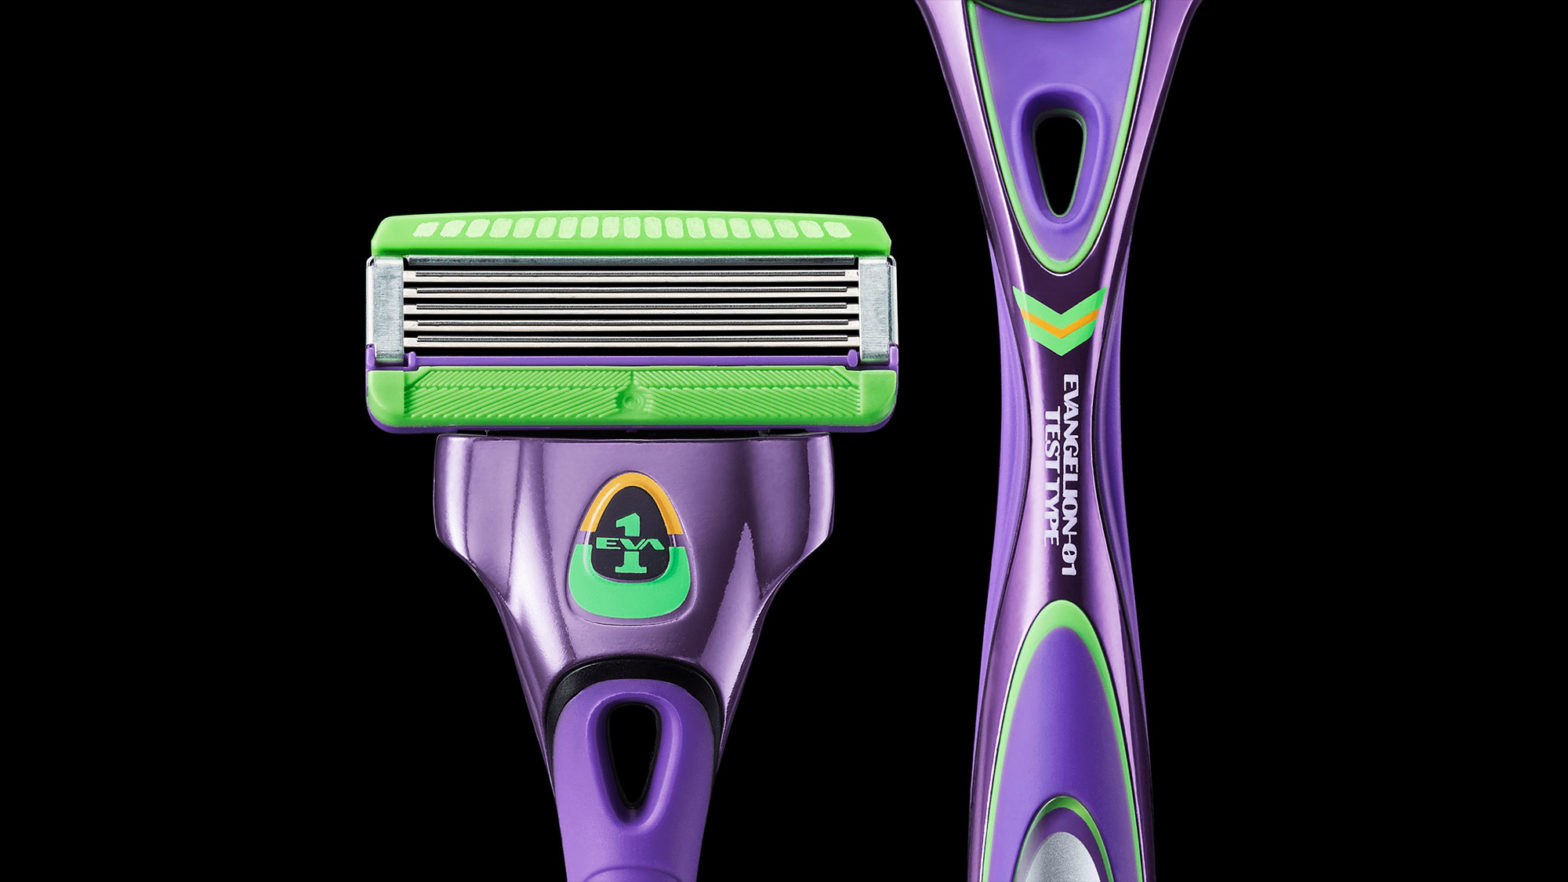 Schick Hydro 5 EVA Model Shavers